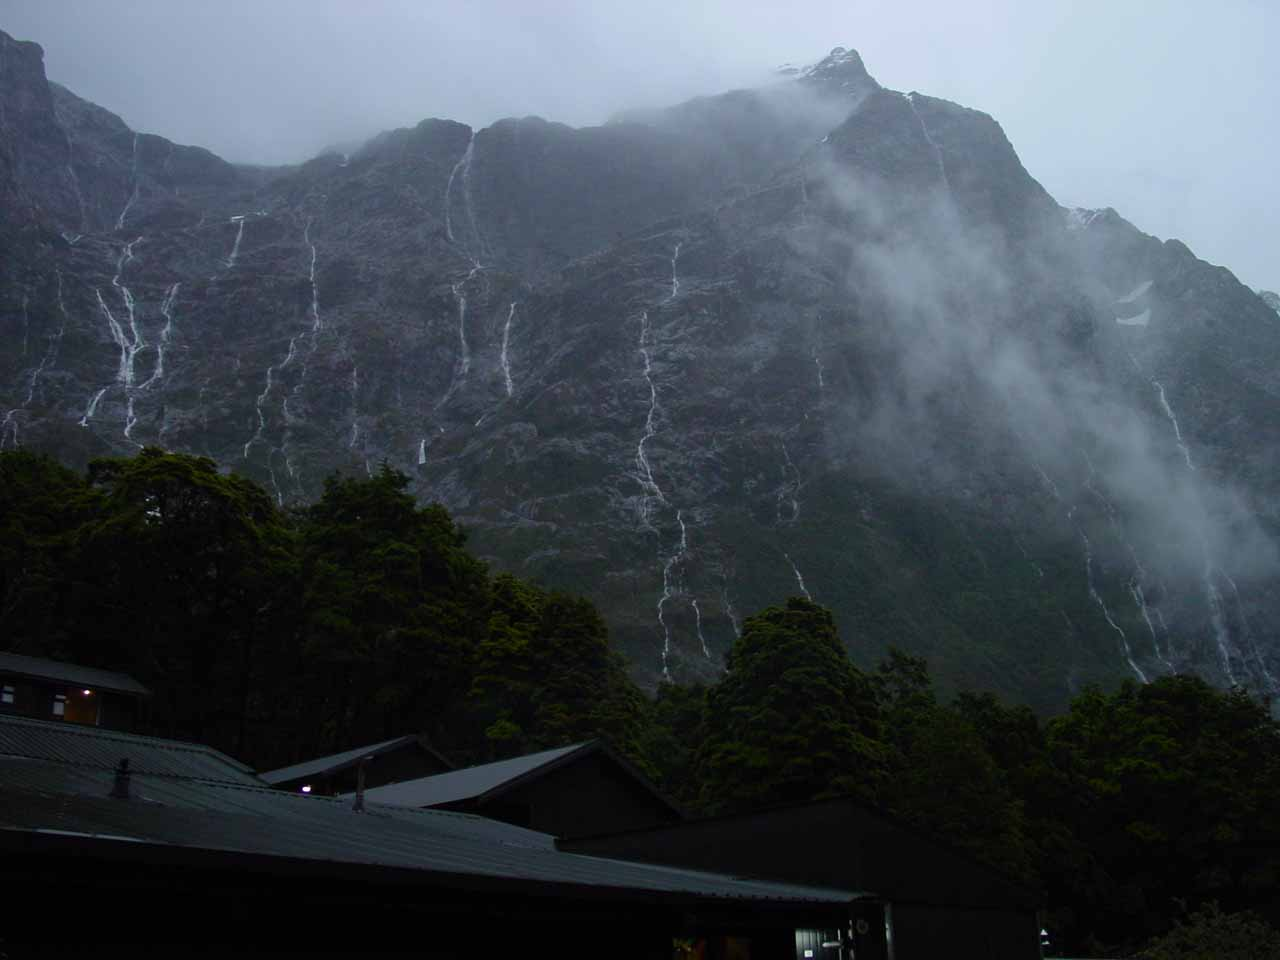 Waterfalls coming down like veins behind the Pompolona Hut